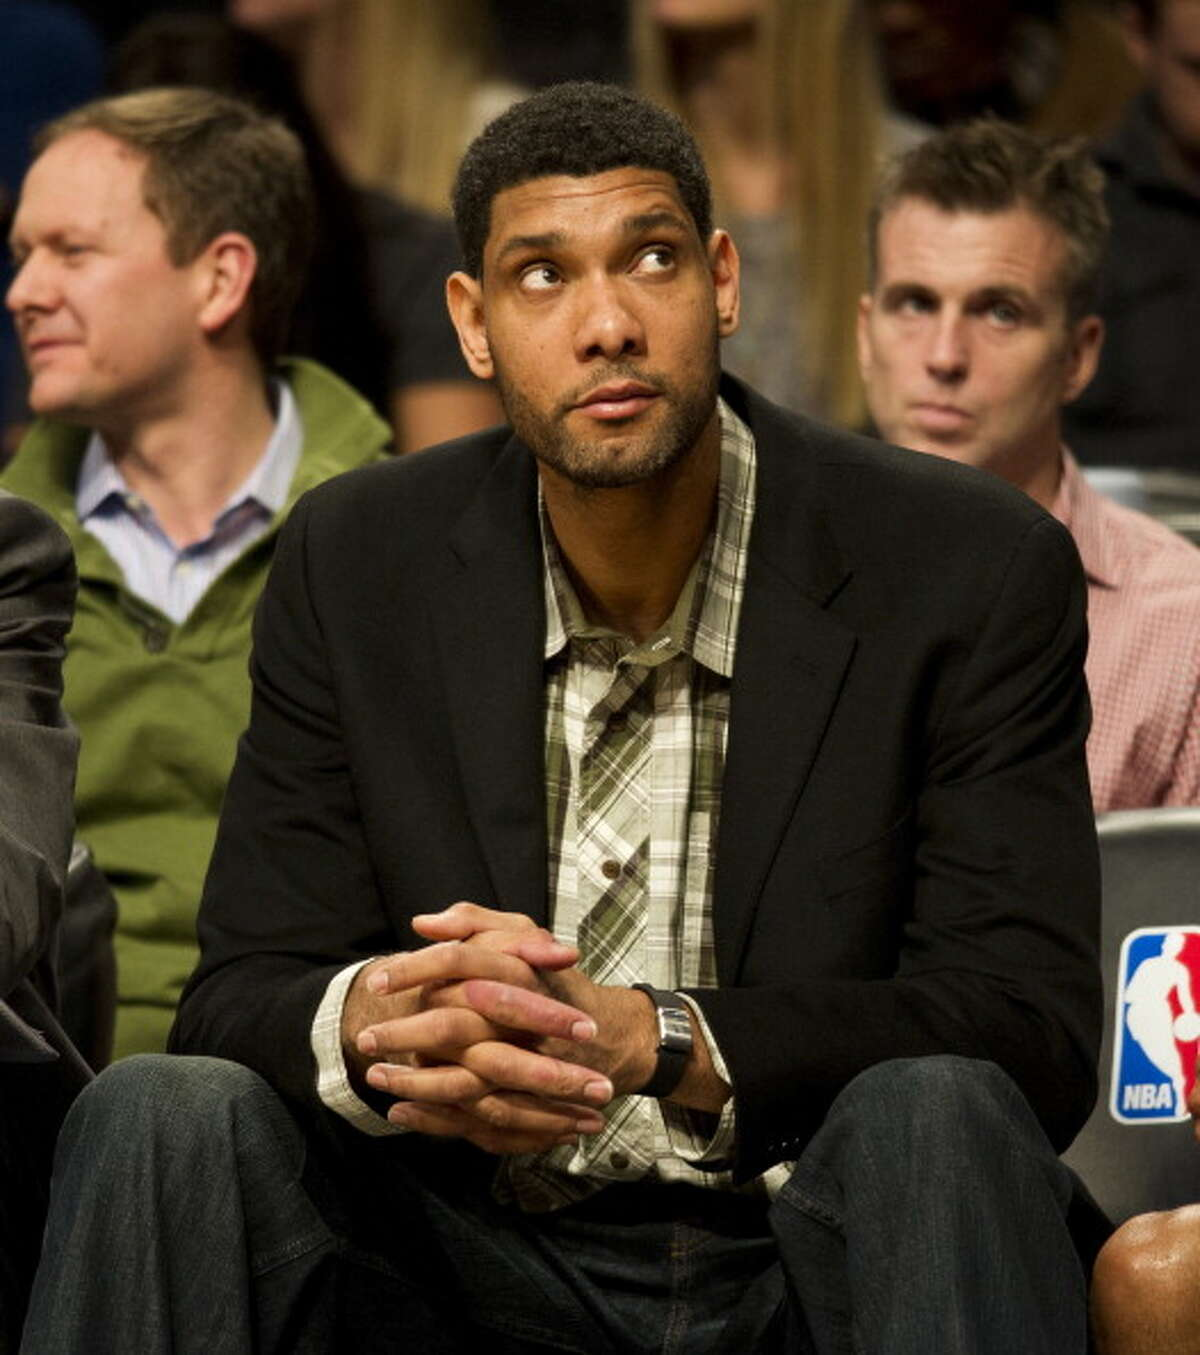 """Tim Duncan - """"Most likely to succeed,"""" accepted into Havard his freshman year Timmy was the first of the group to turn 18 but smoking and clubbing were the least of his concerns; he couldn't wait to get his hands on his voter's registration card. He is the responsible kid your parents felt safe letting you go out with, whenever he wasn't reorganizing his sock drawer or reading the dictionary. The rare times he does go out, he rolls out in a sweet custom ride."""